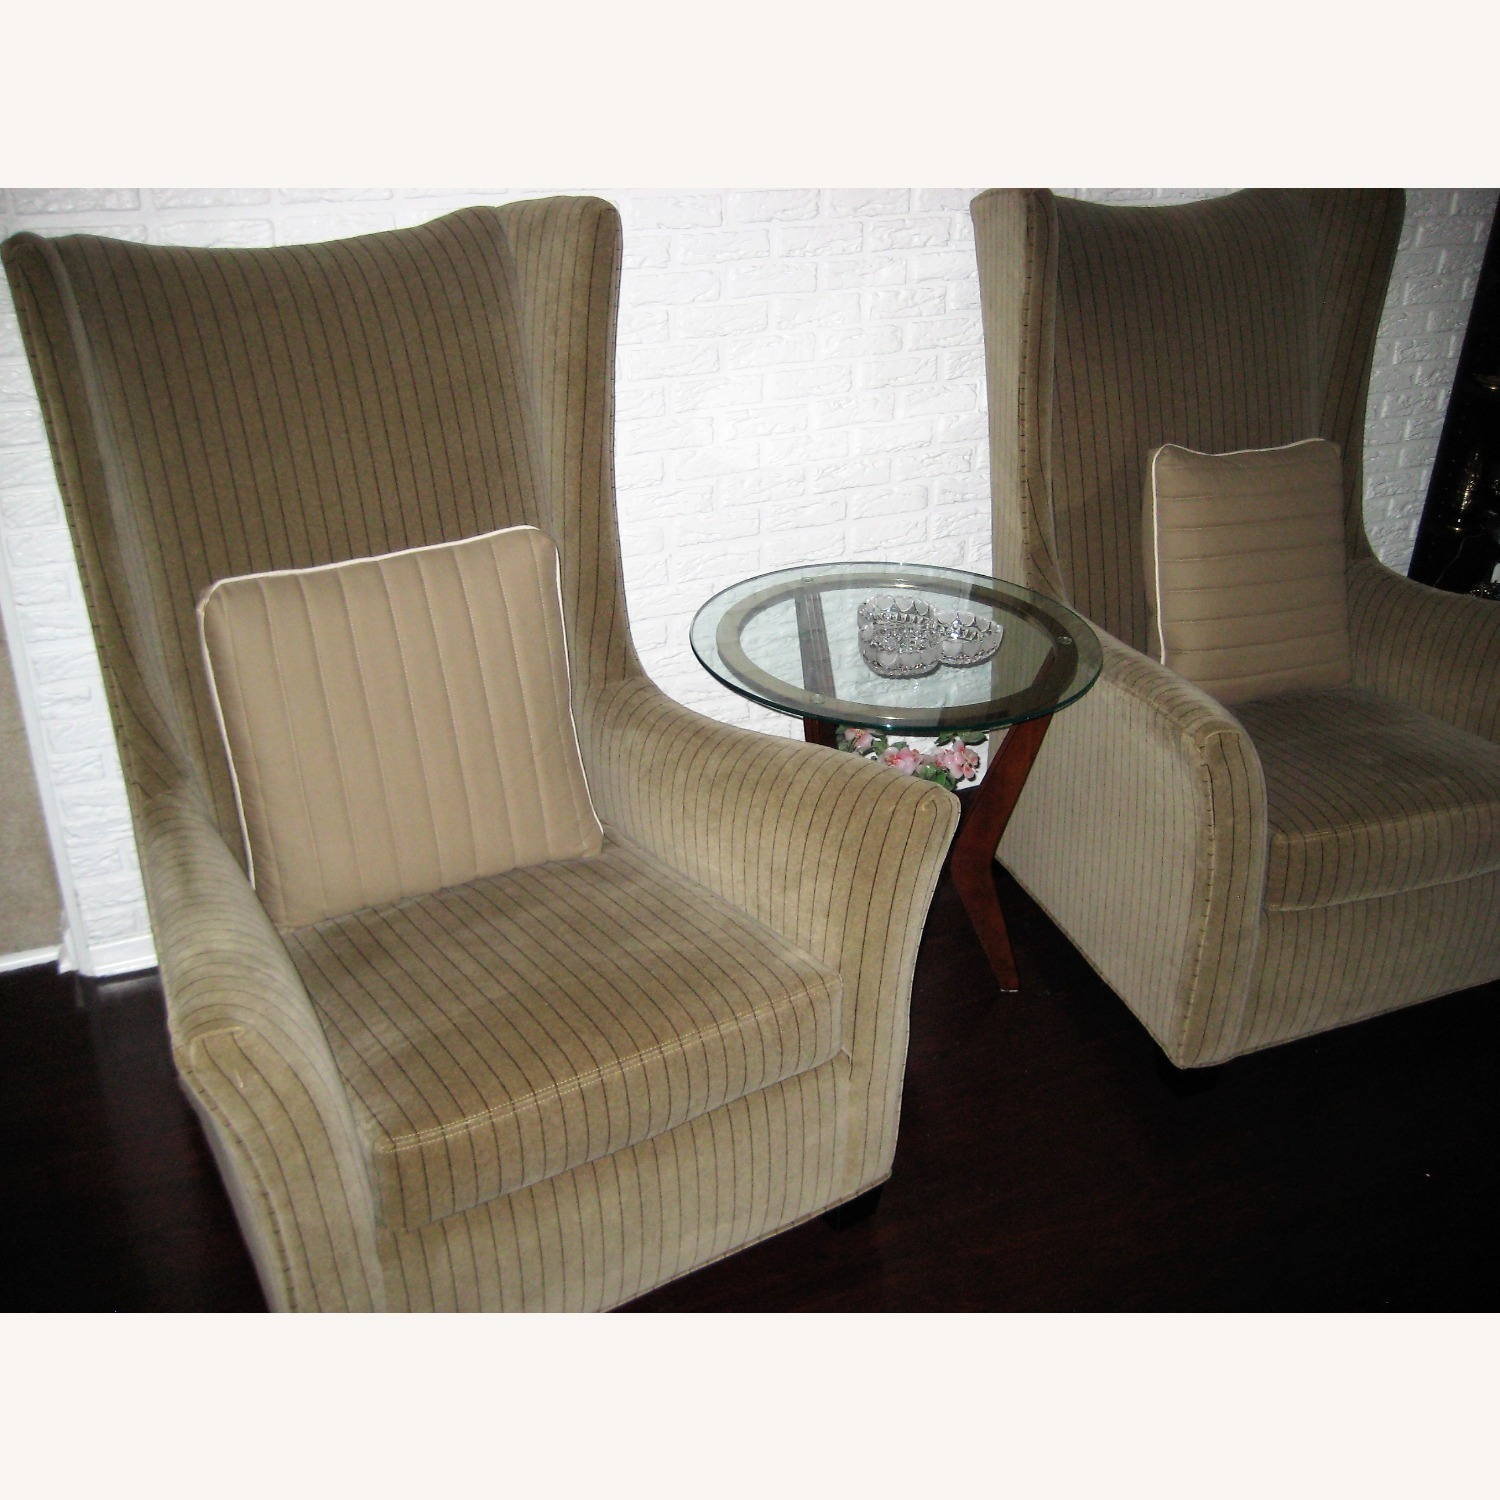 CR Laine 2 Chairs - image-2